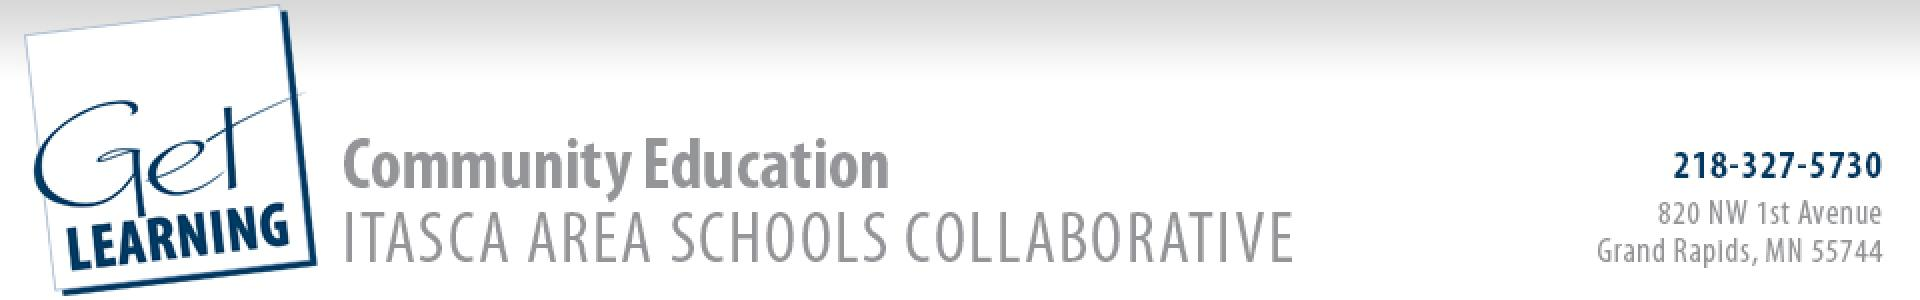 Class Registration v3.0 - Itasca Area Schools Collaborative Community Education